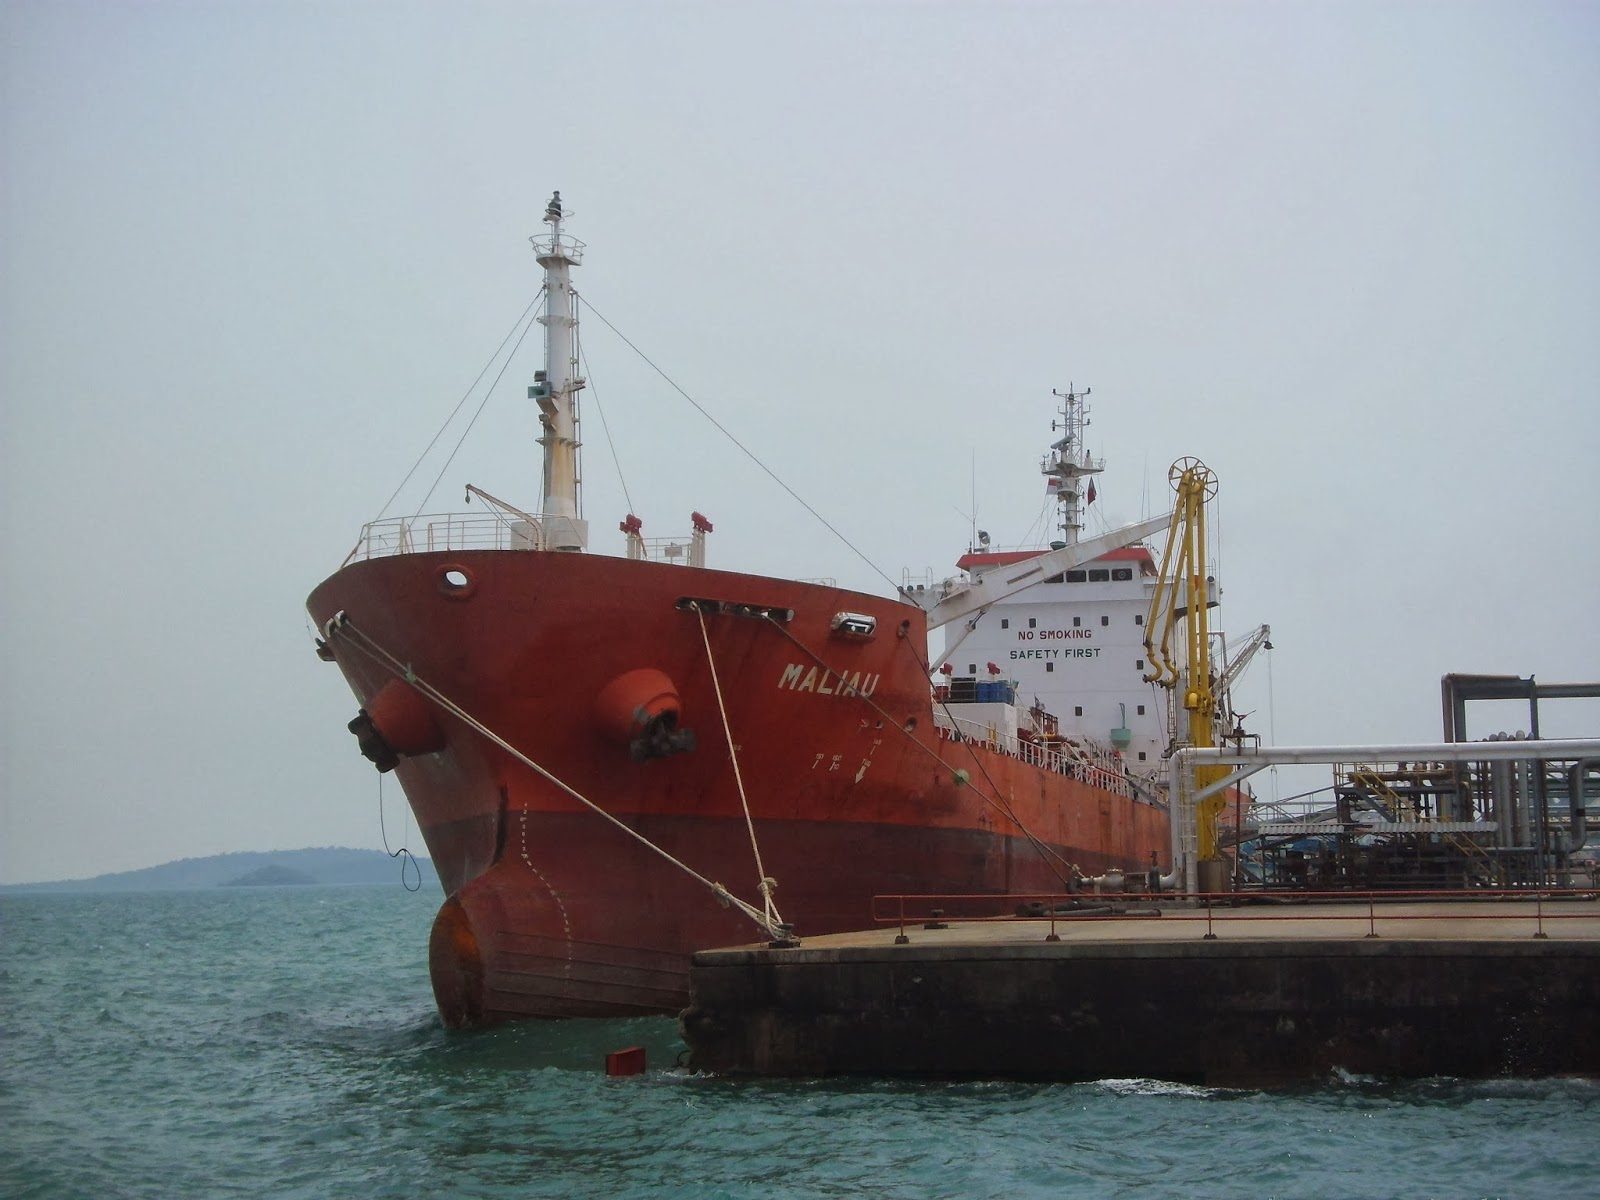 On Hire Survey Kapal Tanker Maliau